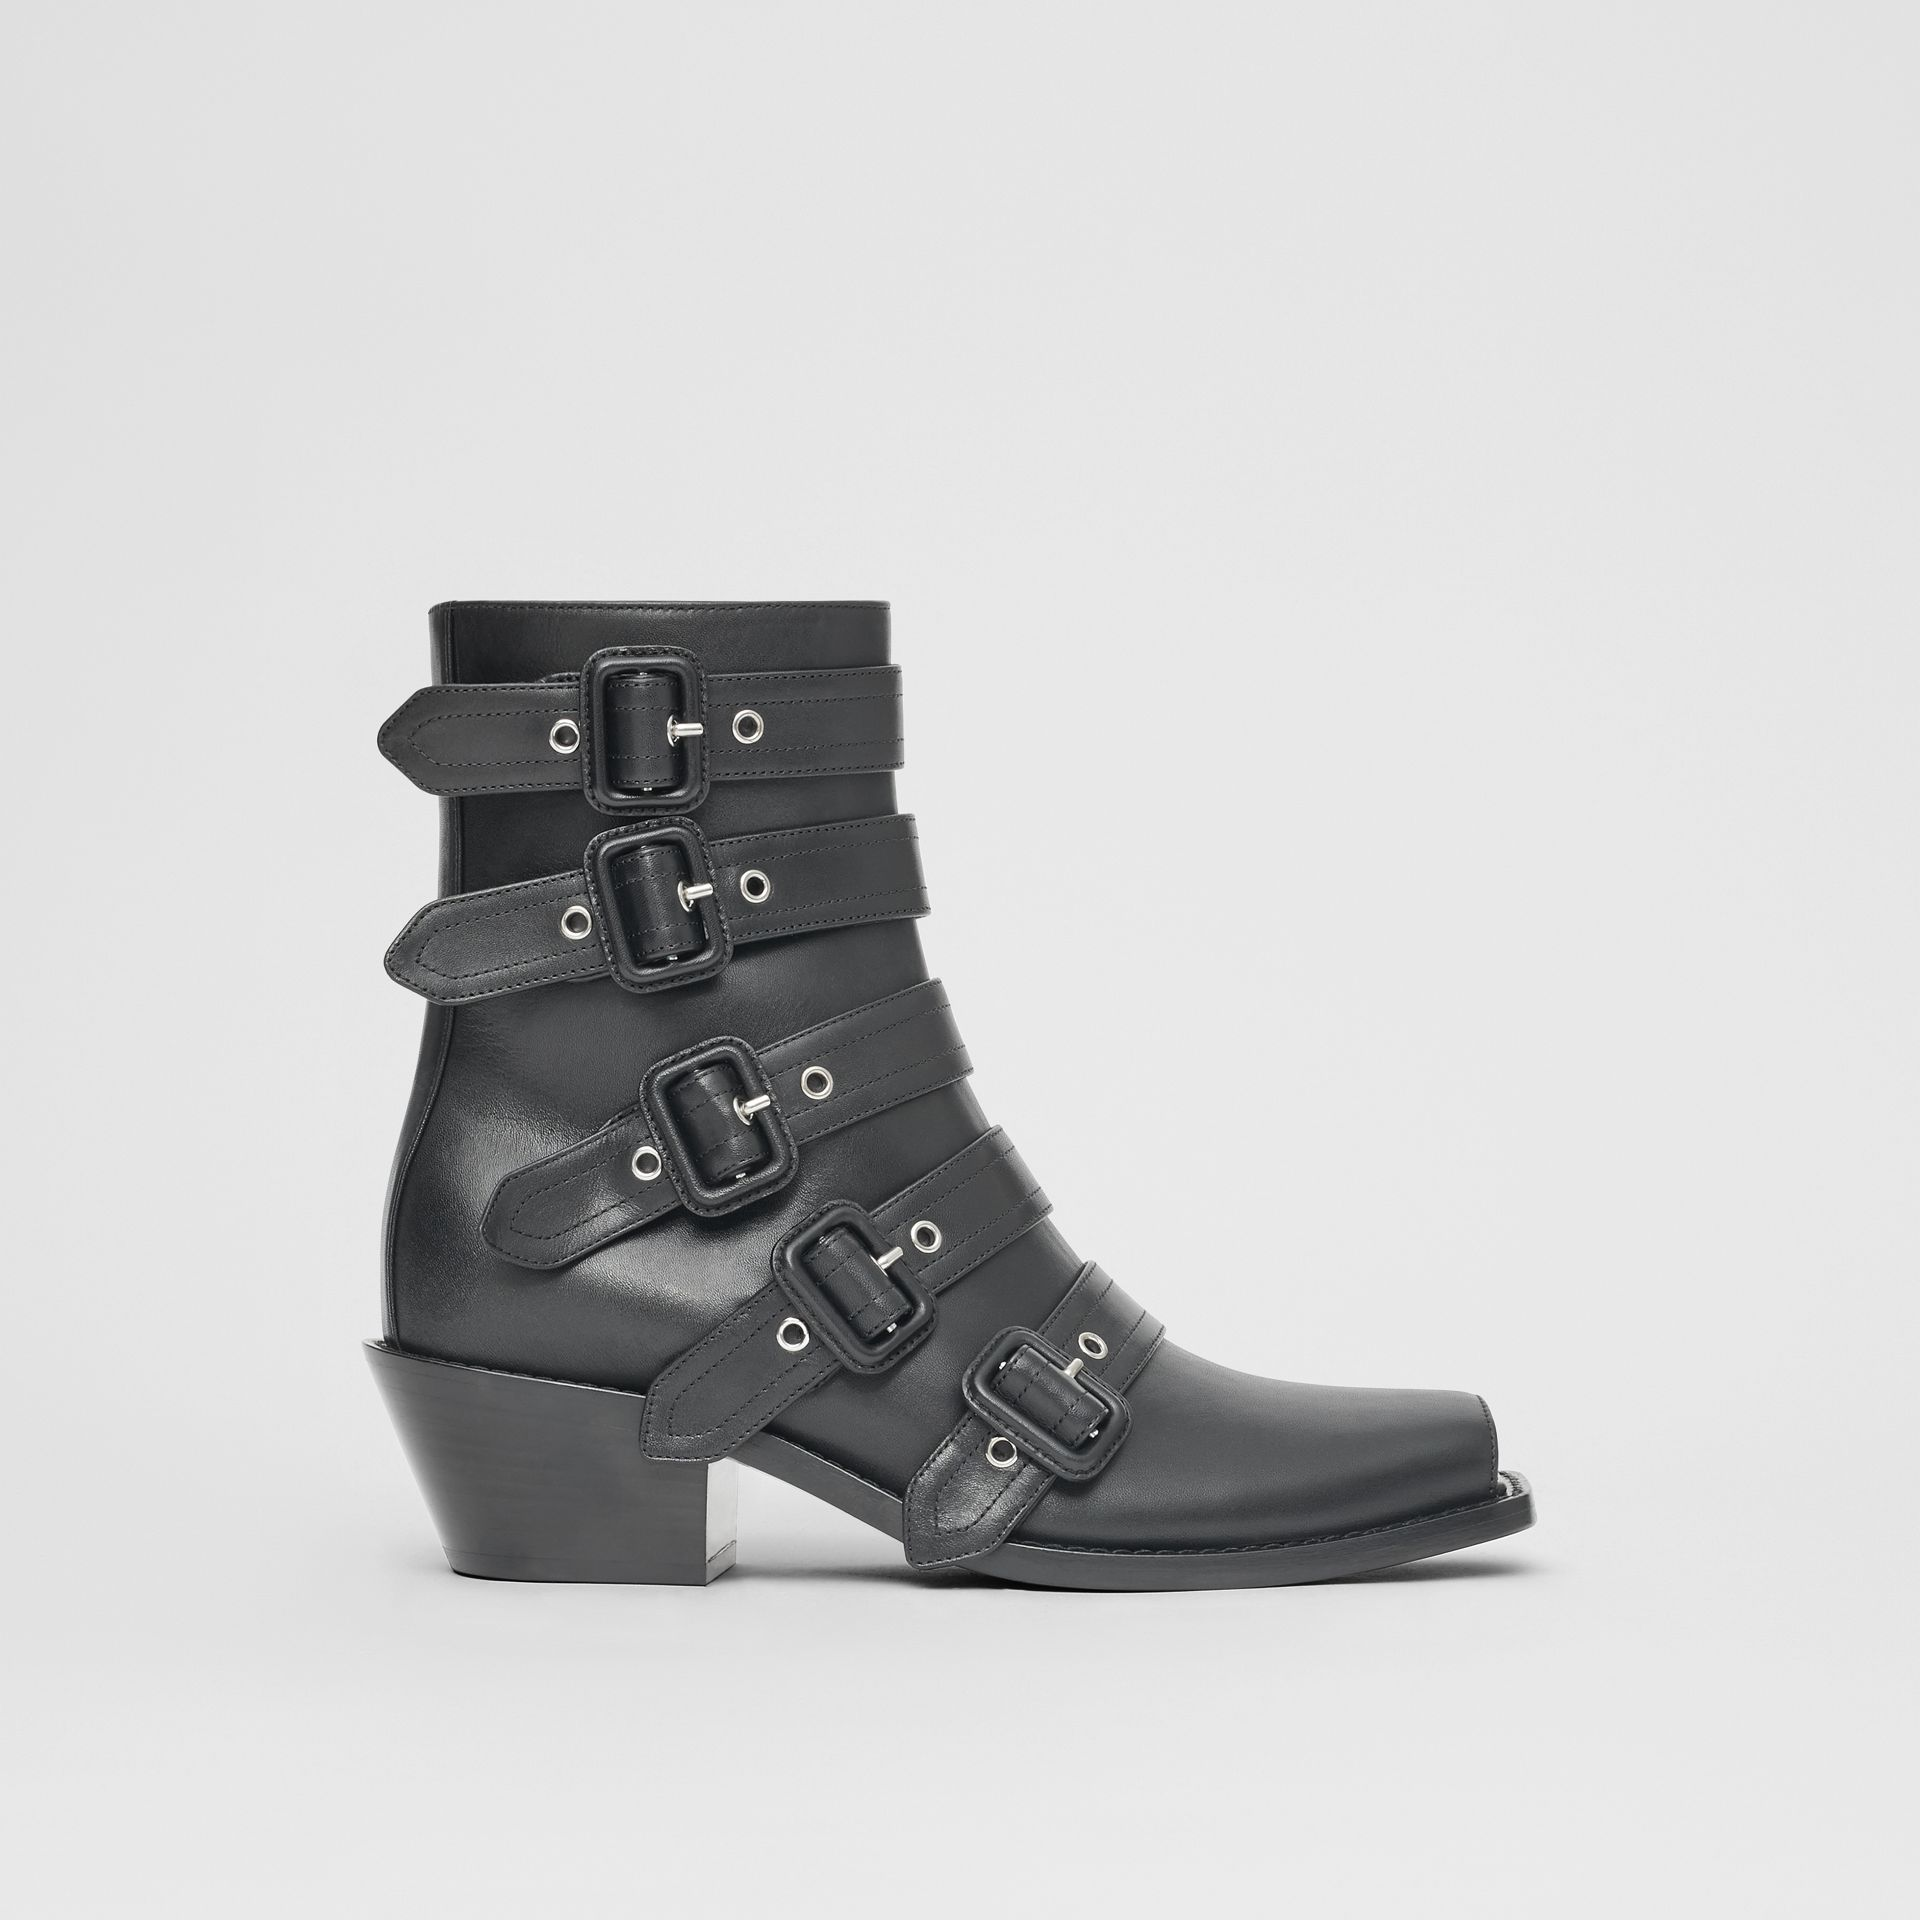 Buckled Leather Peep-toe Ankle Boots in Black - Women | Burberry United Kingdom - gallery image 4